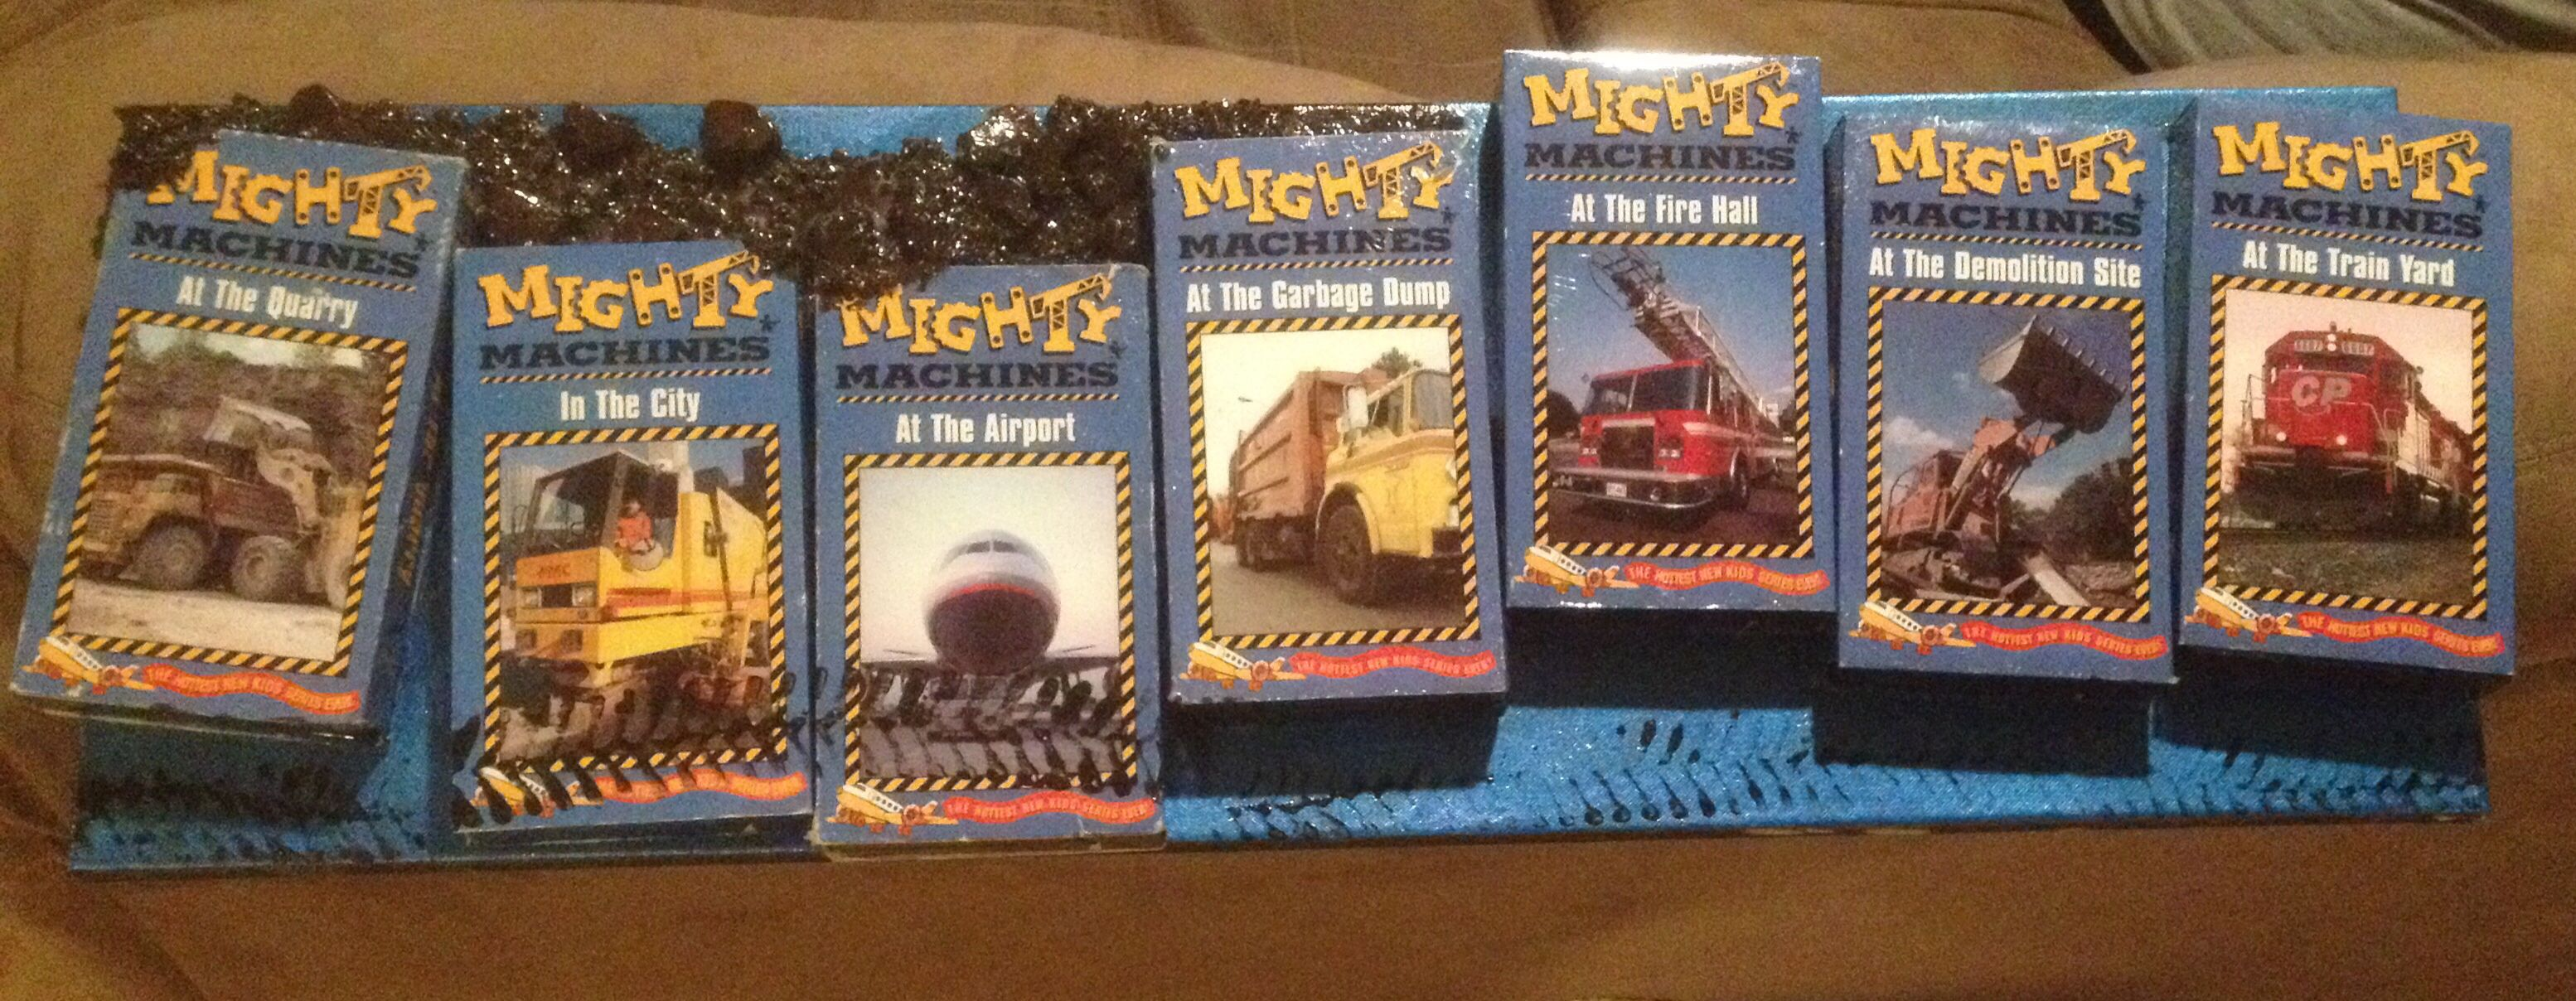 Mighty Machines Vhs Painting For My Son Art Projects